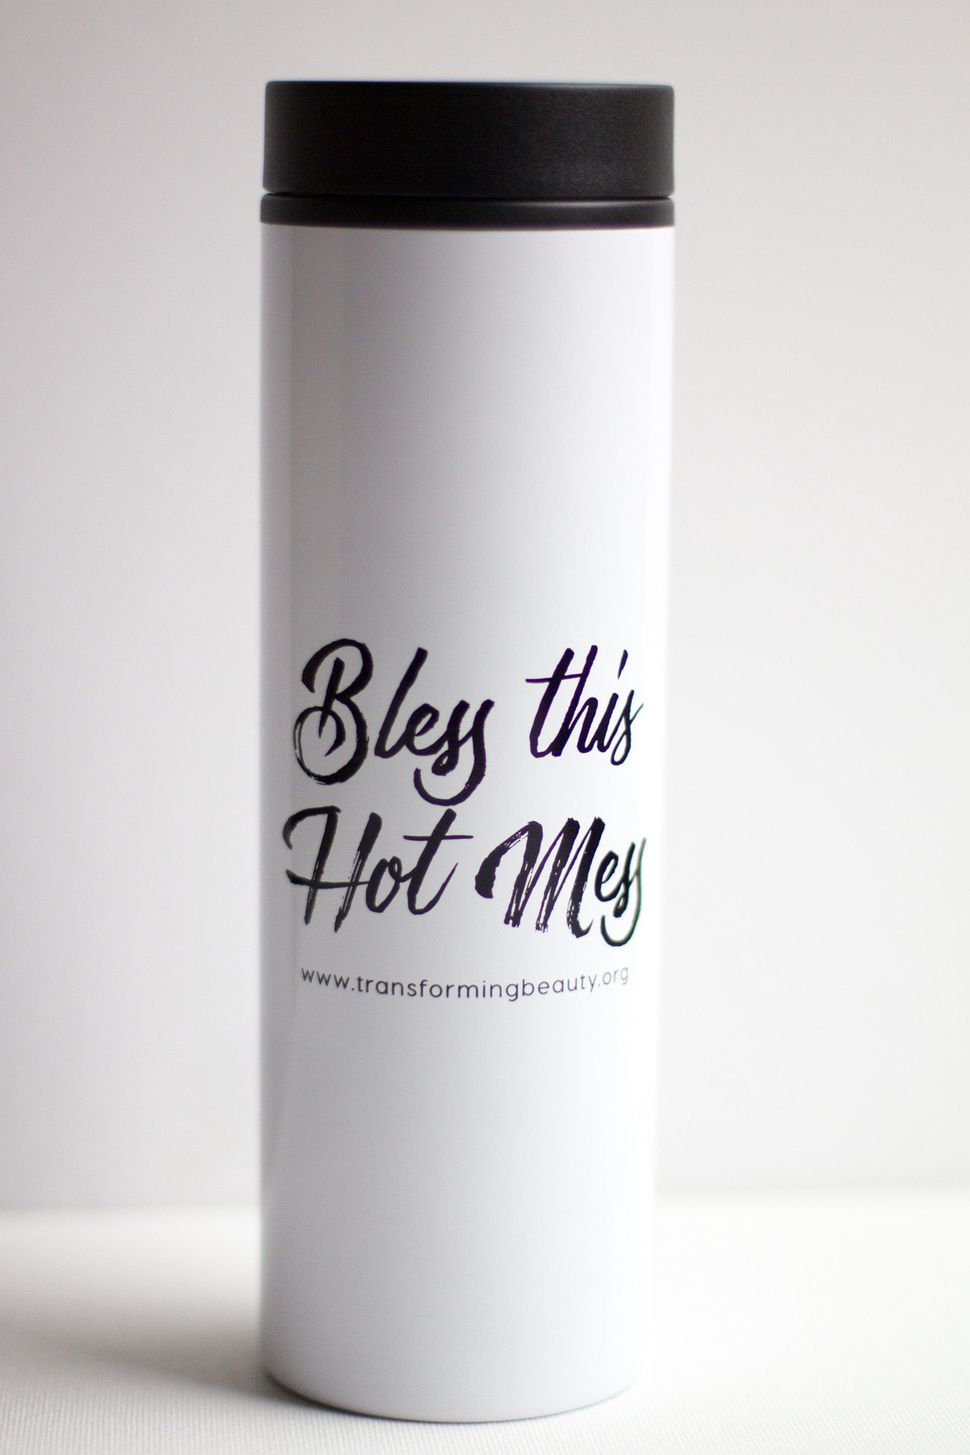 "<a href=""http://www.transformingbeautyshop.com/products/bless-this-hot-mess-travel-coffee-mug"">Bless This Hot Mess Travel Cof"